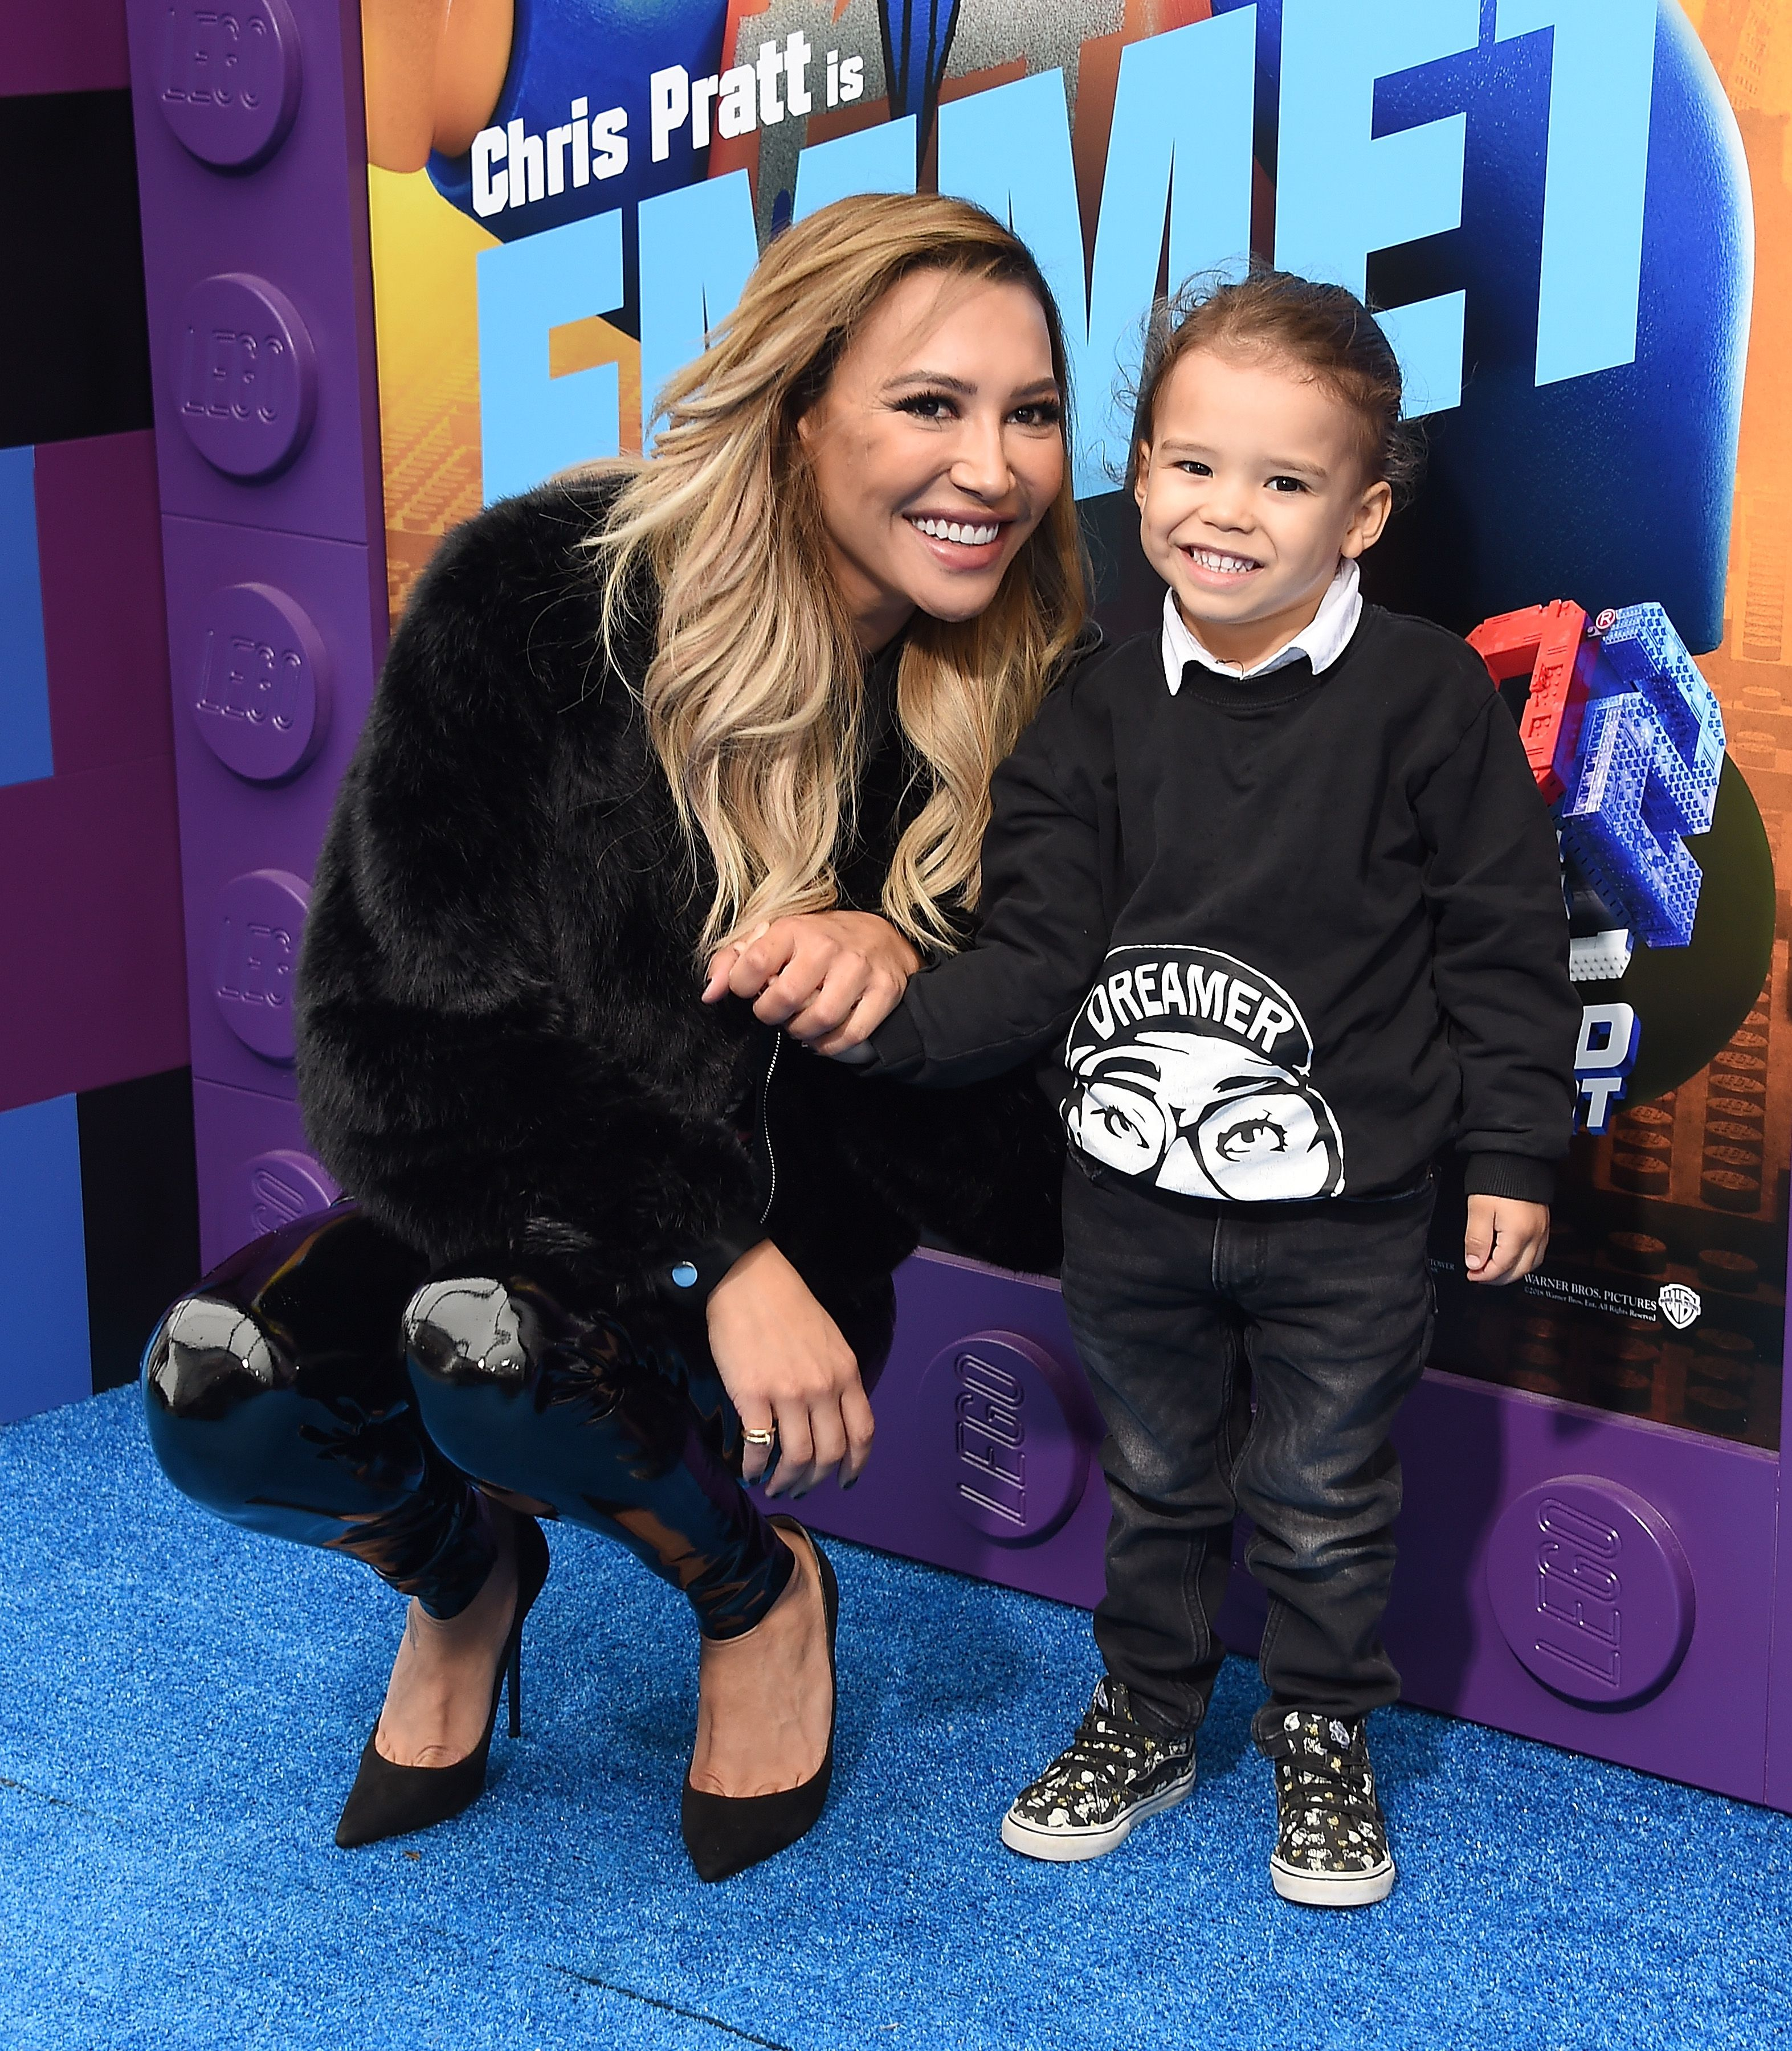 """Naya Rivera and her son Josey Hollis at the premiere of  """"The Lego Movie 2: The Second Part"""" in 2019 in Westwood, California   Source: Getty Images"""